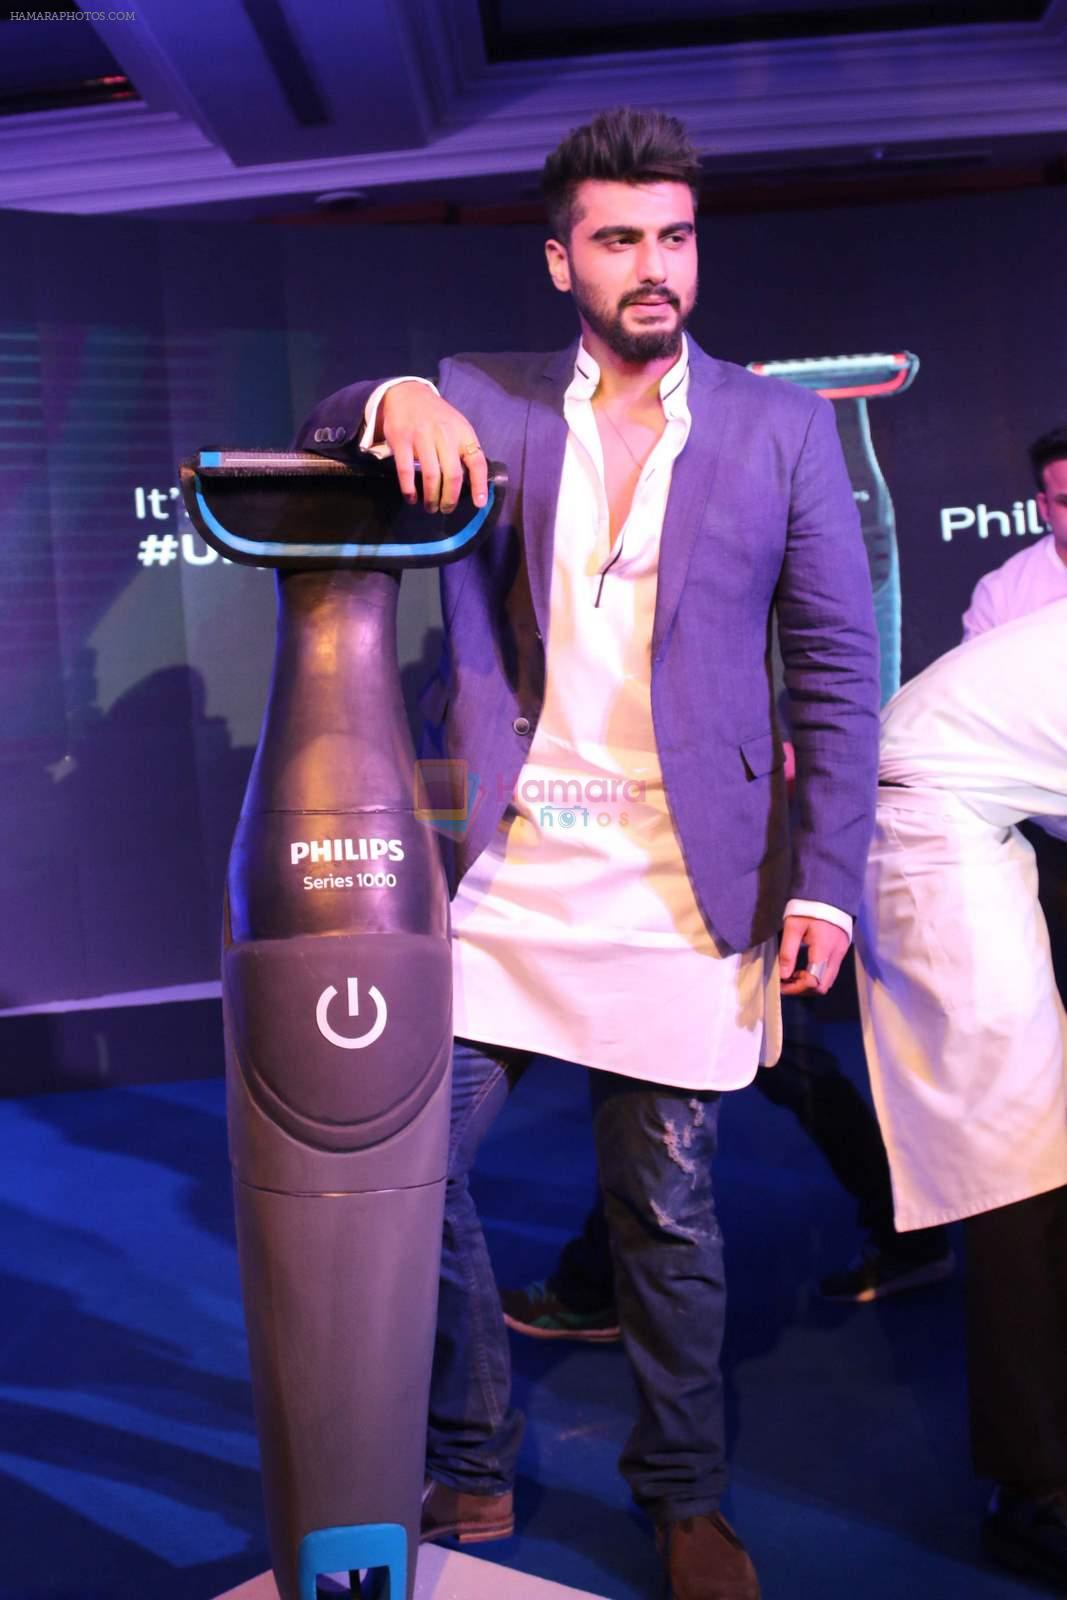 Arjun Kapoor at Philips launch in Delhi on 17th June 2015